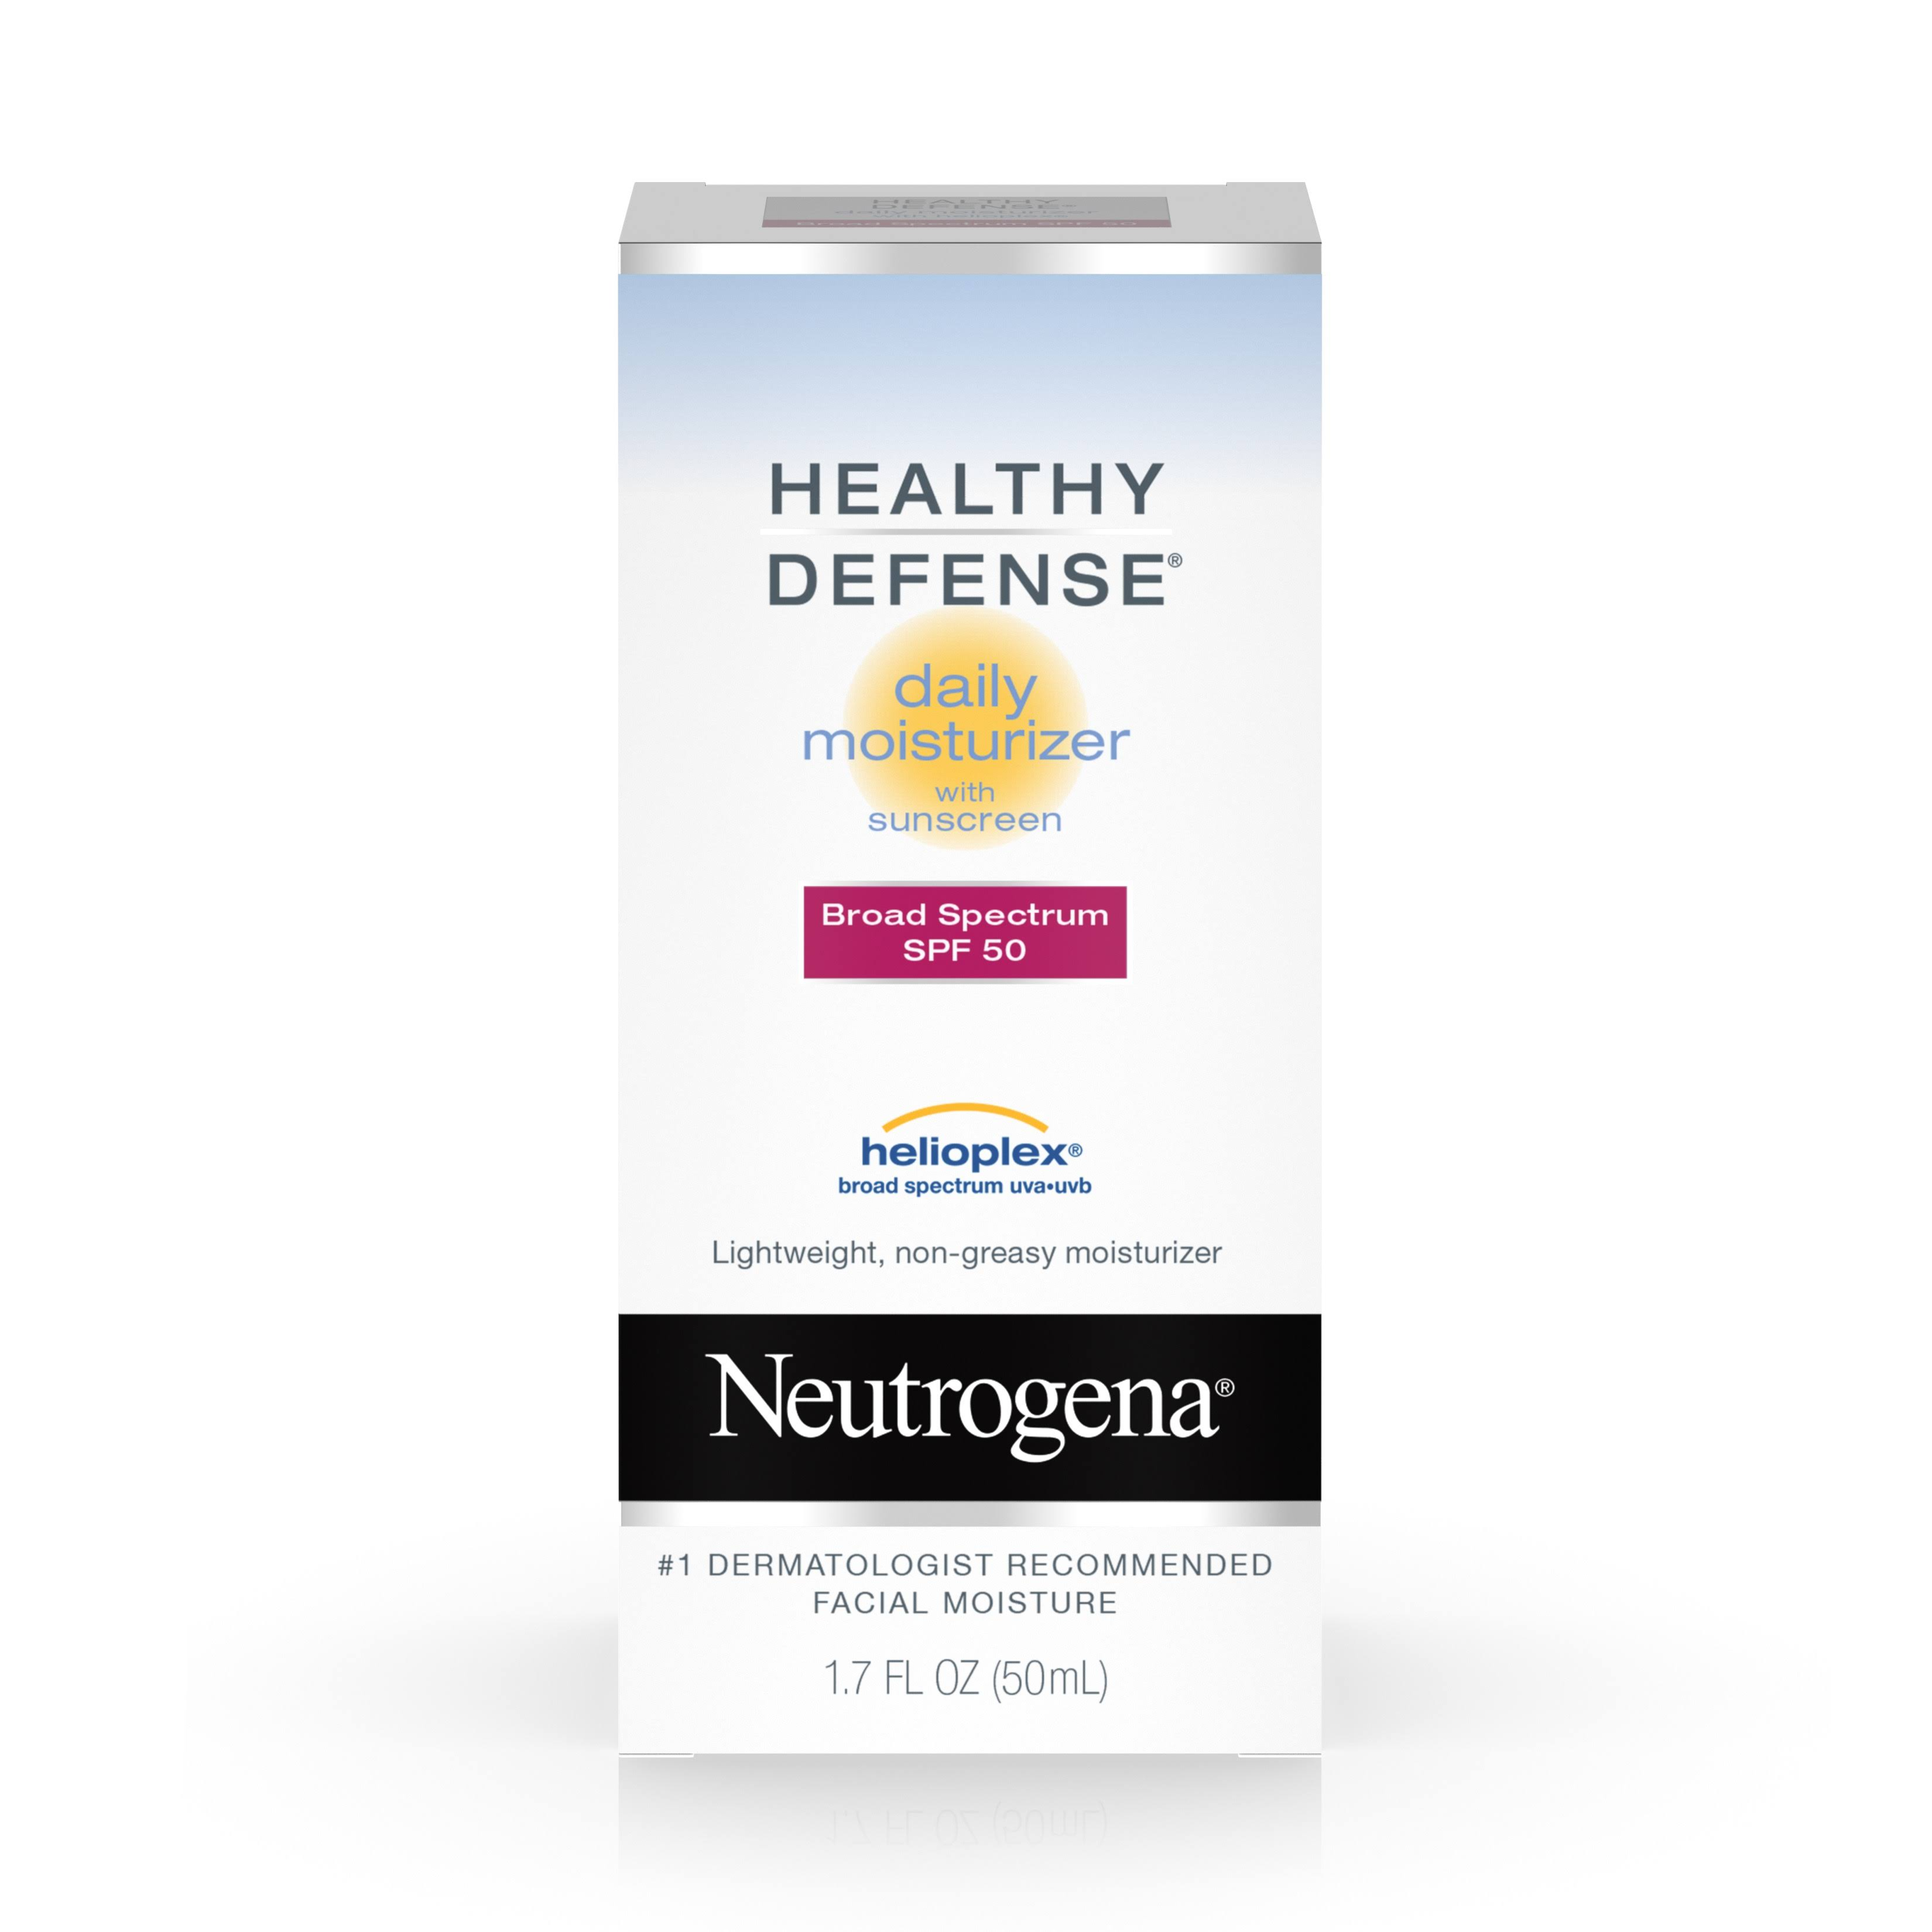 Neutrogena Healthy Defense Daily Moisturizer Broad Spectrum SPF 50